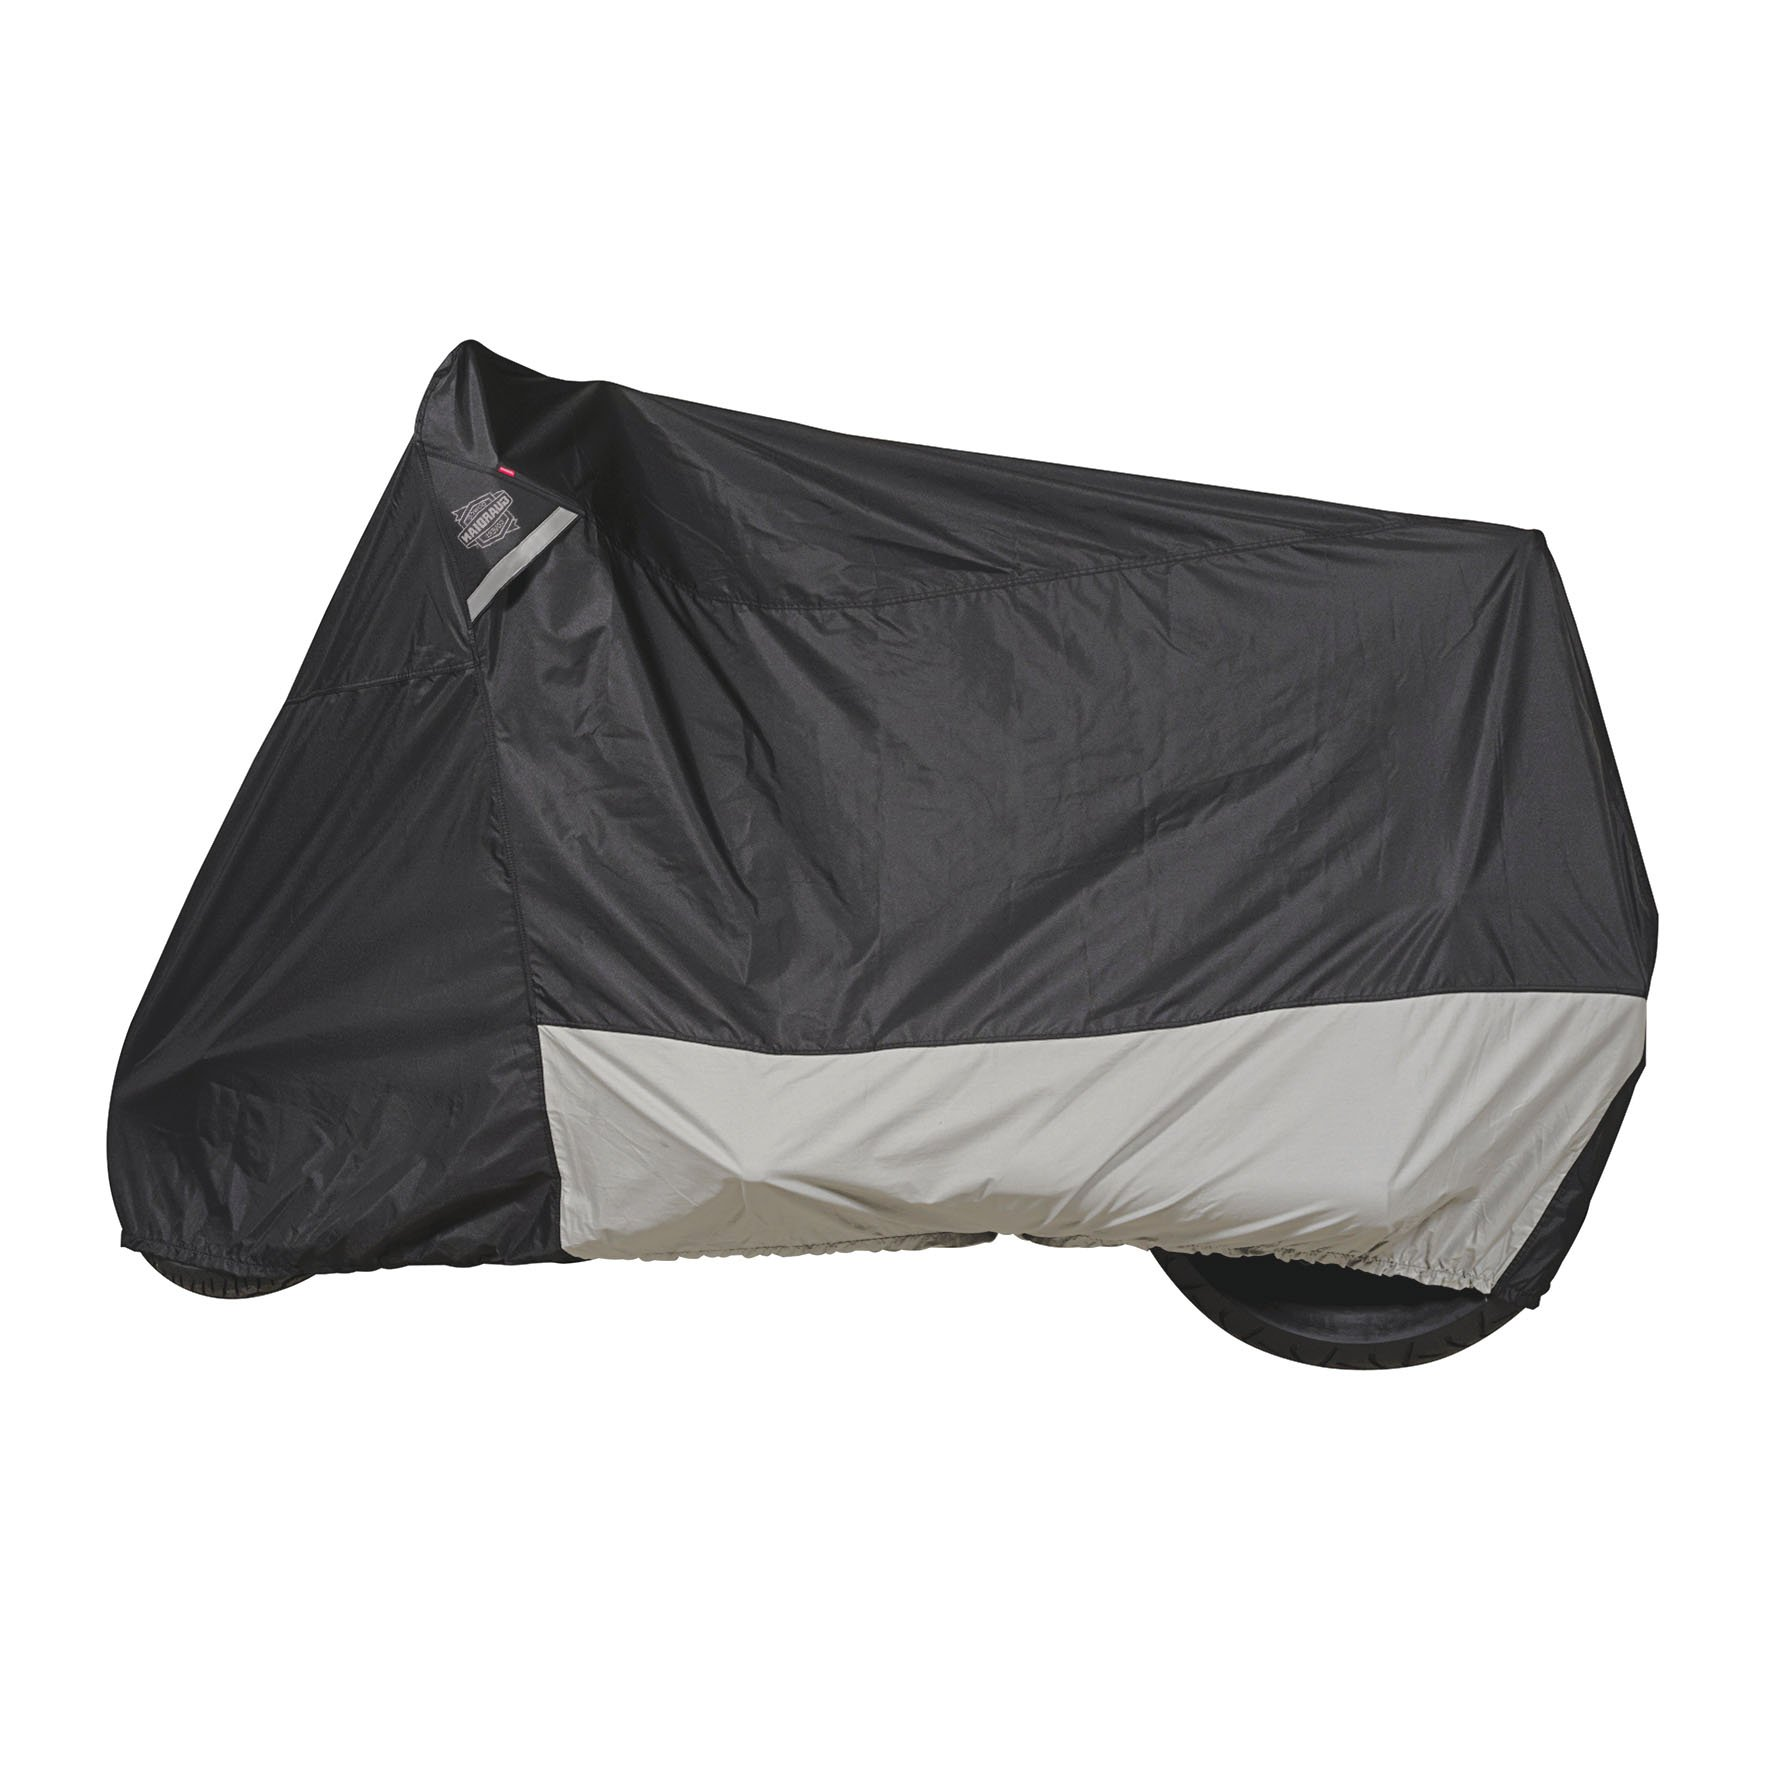 Guardian by Dowco 51223-00 WeatherAll Plus Indoor/Outdoor Waterproof Motorcycle Cover: Black, Cruiser